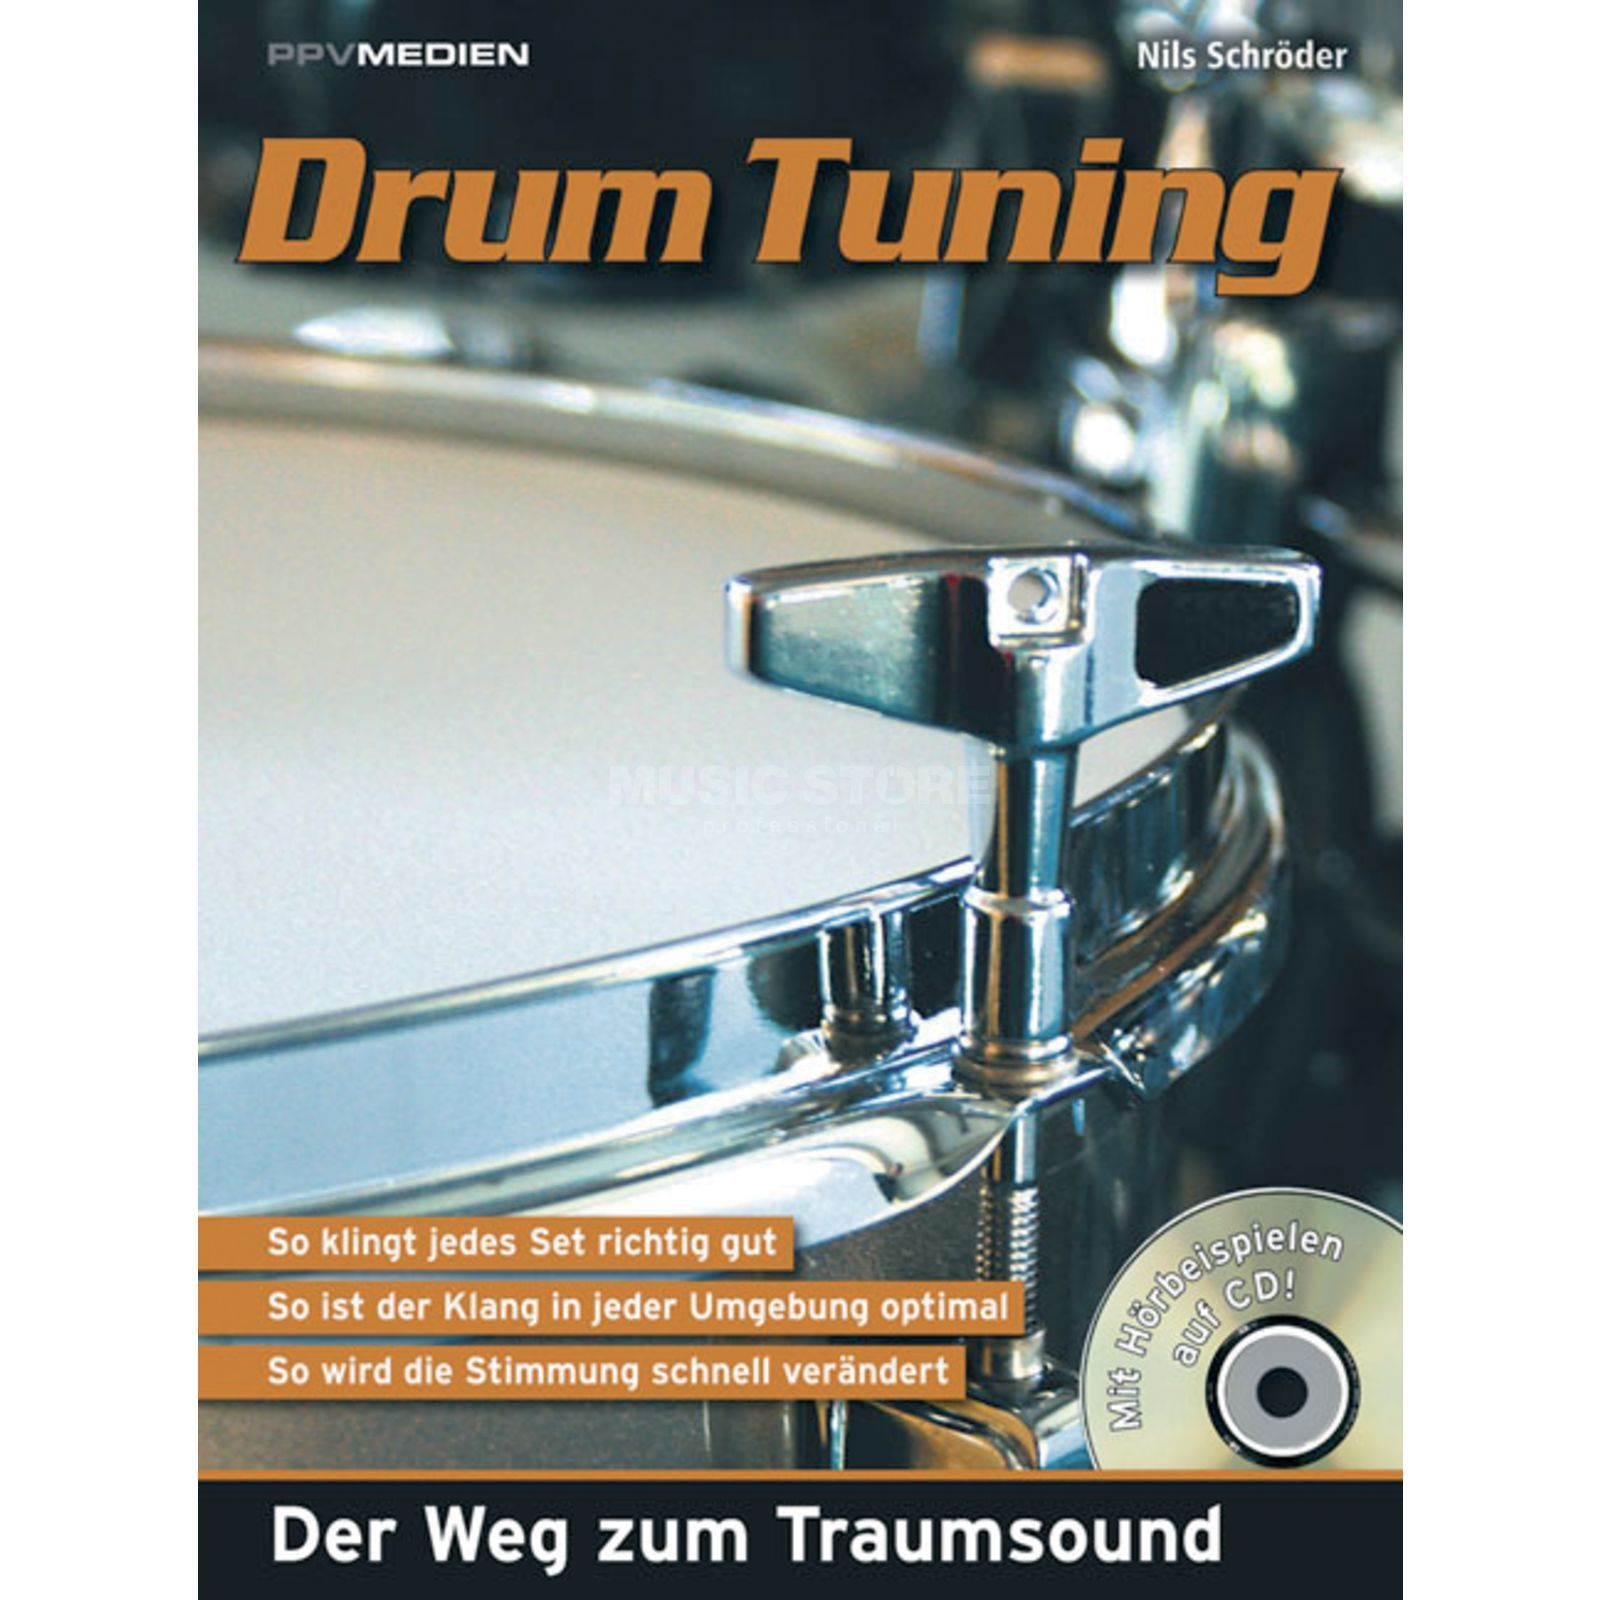 PPV Medien Drum Tuning Schröder, Buch incl. CD Productafbeelding